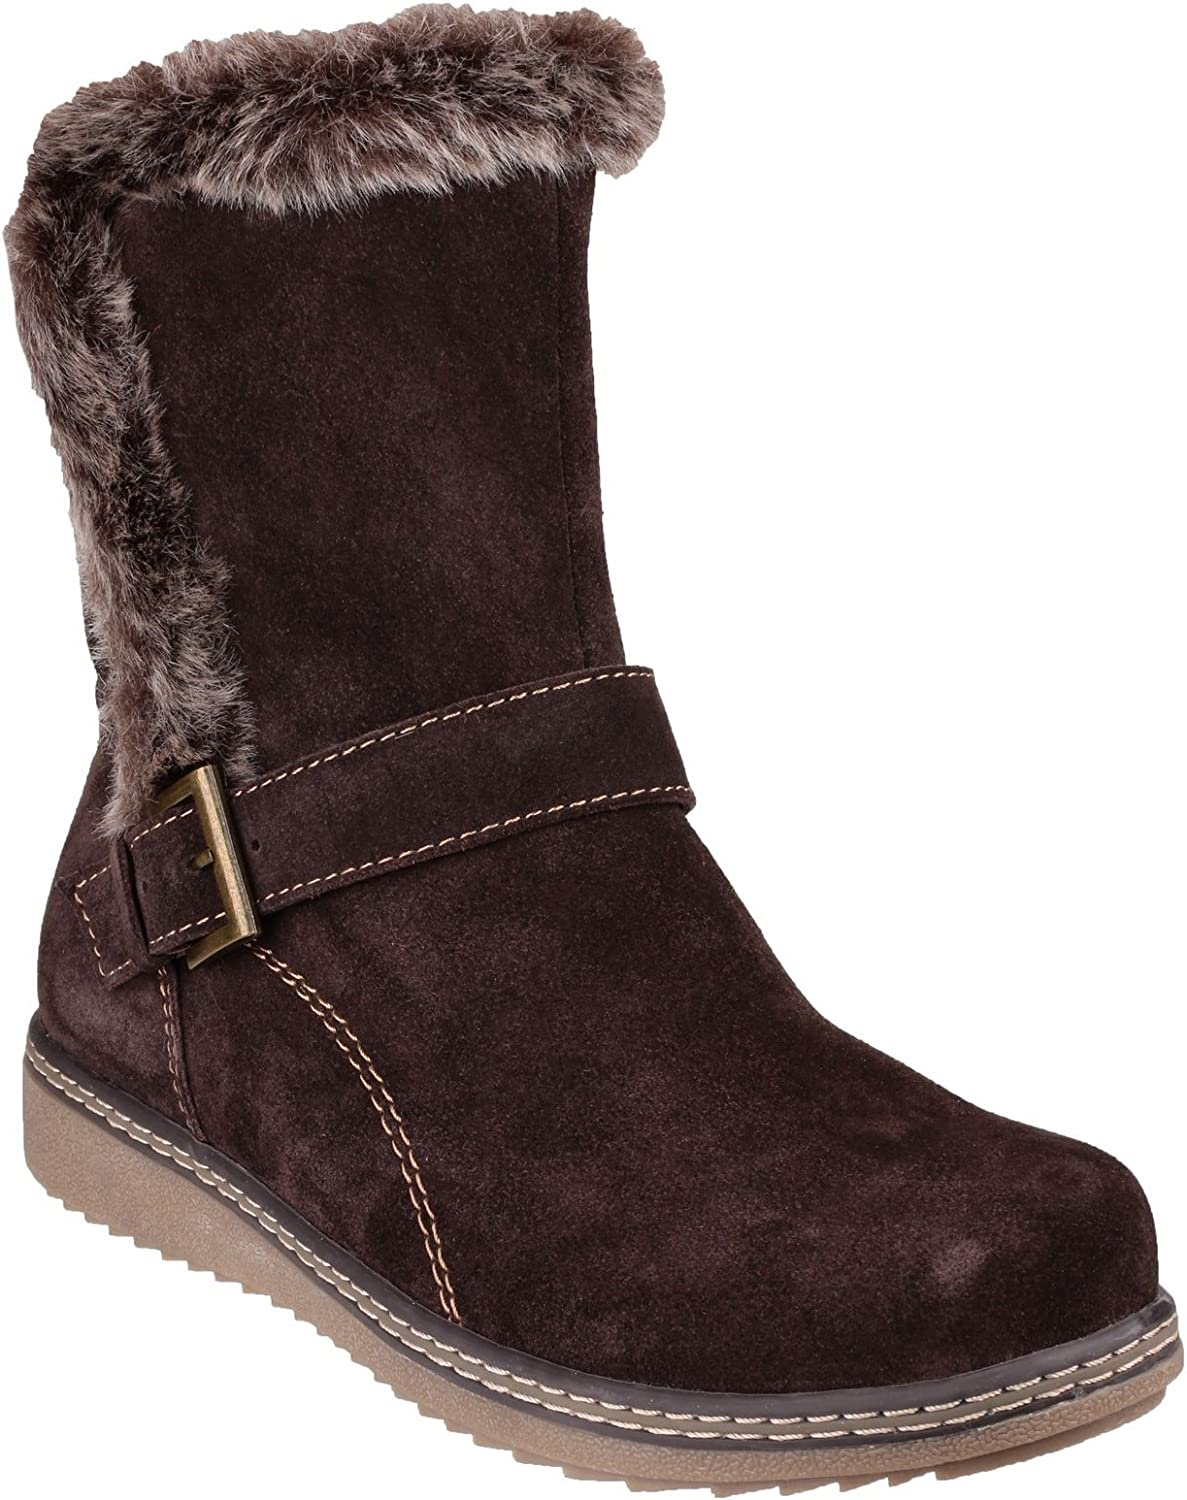 Fleet & Foster Womens Budapest Winter Boot Brown Size UK 7 EU 40